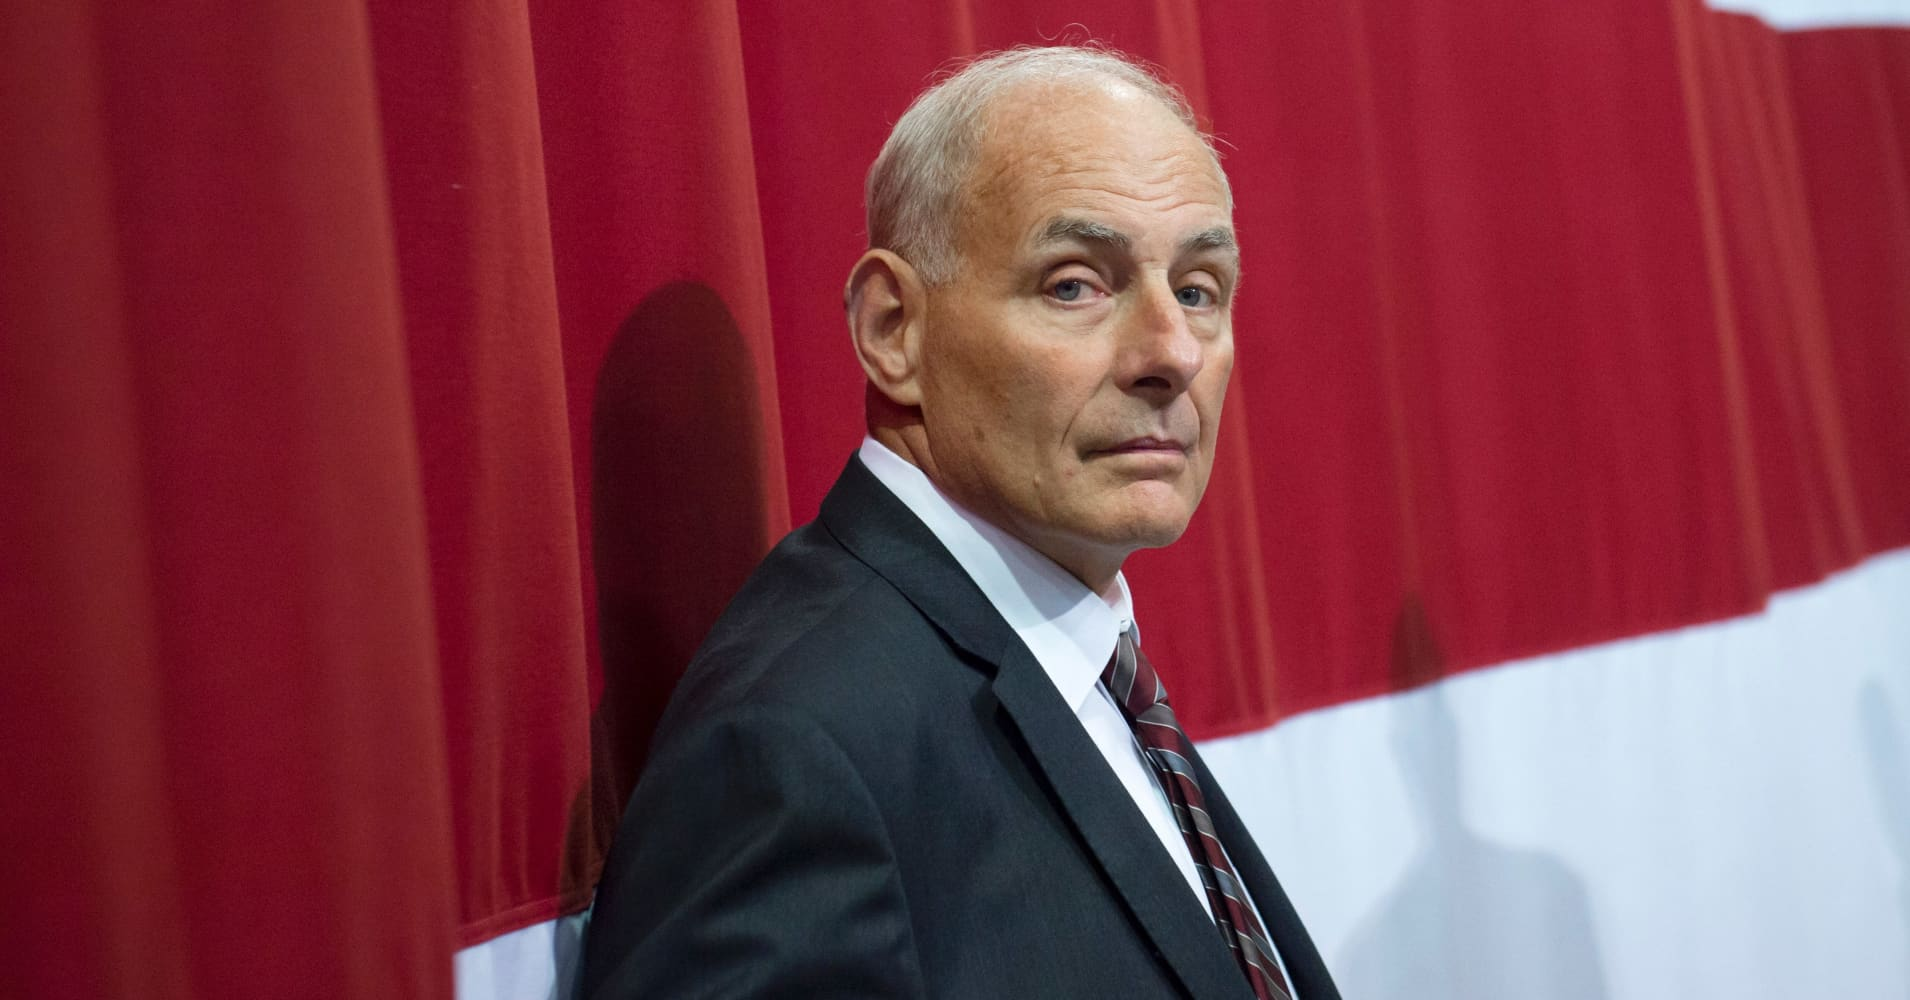 Trump announces John Kelly to depart White House by year's end